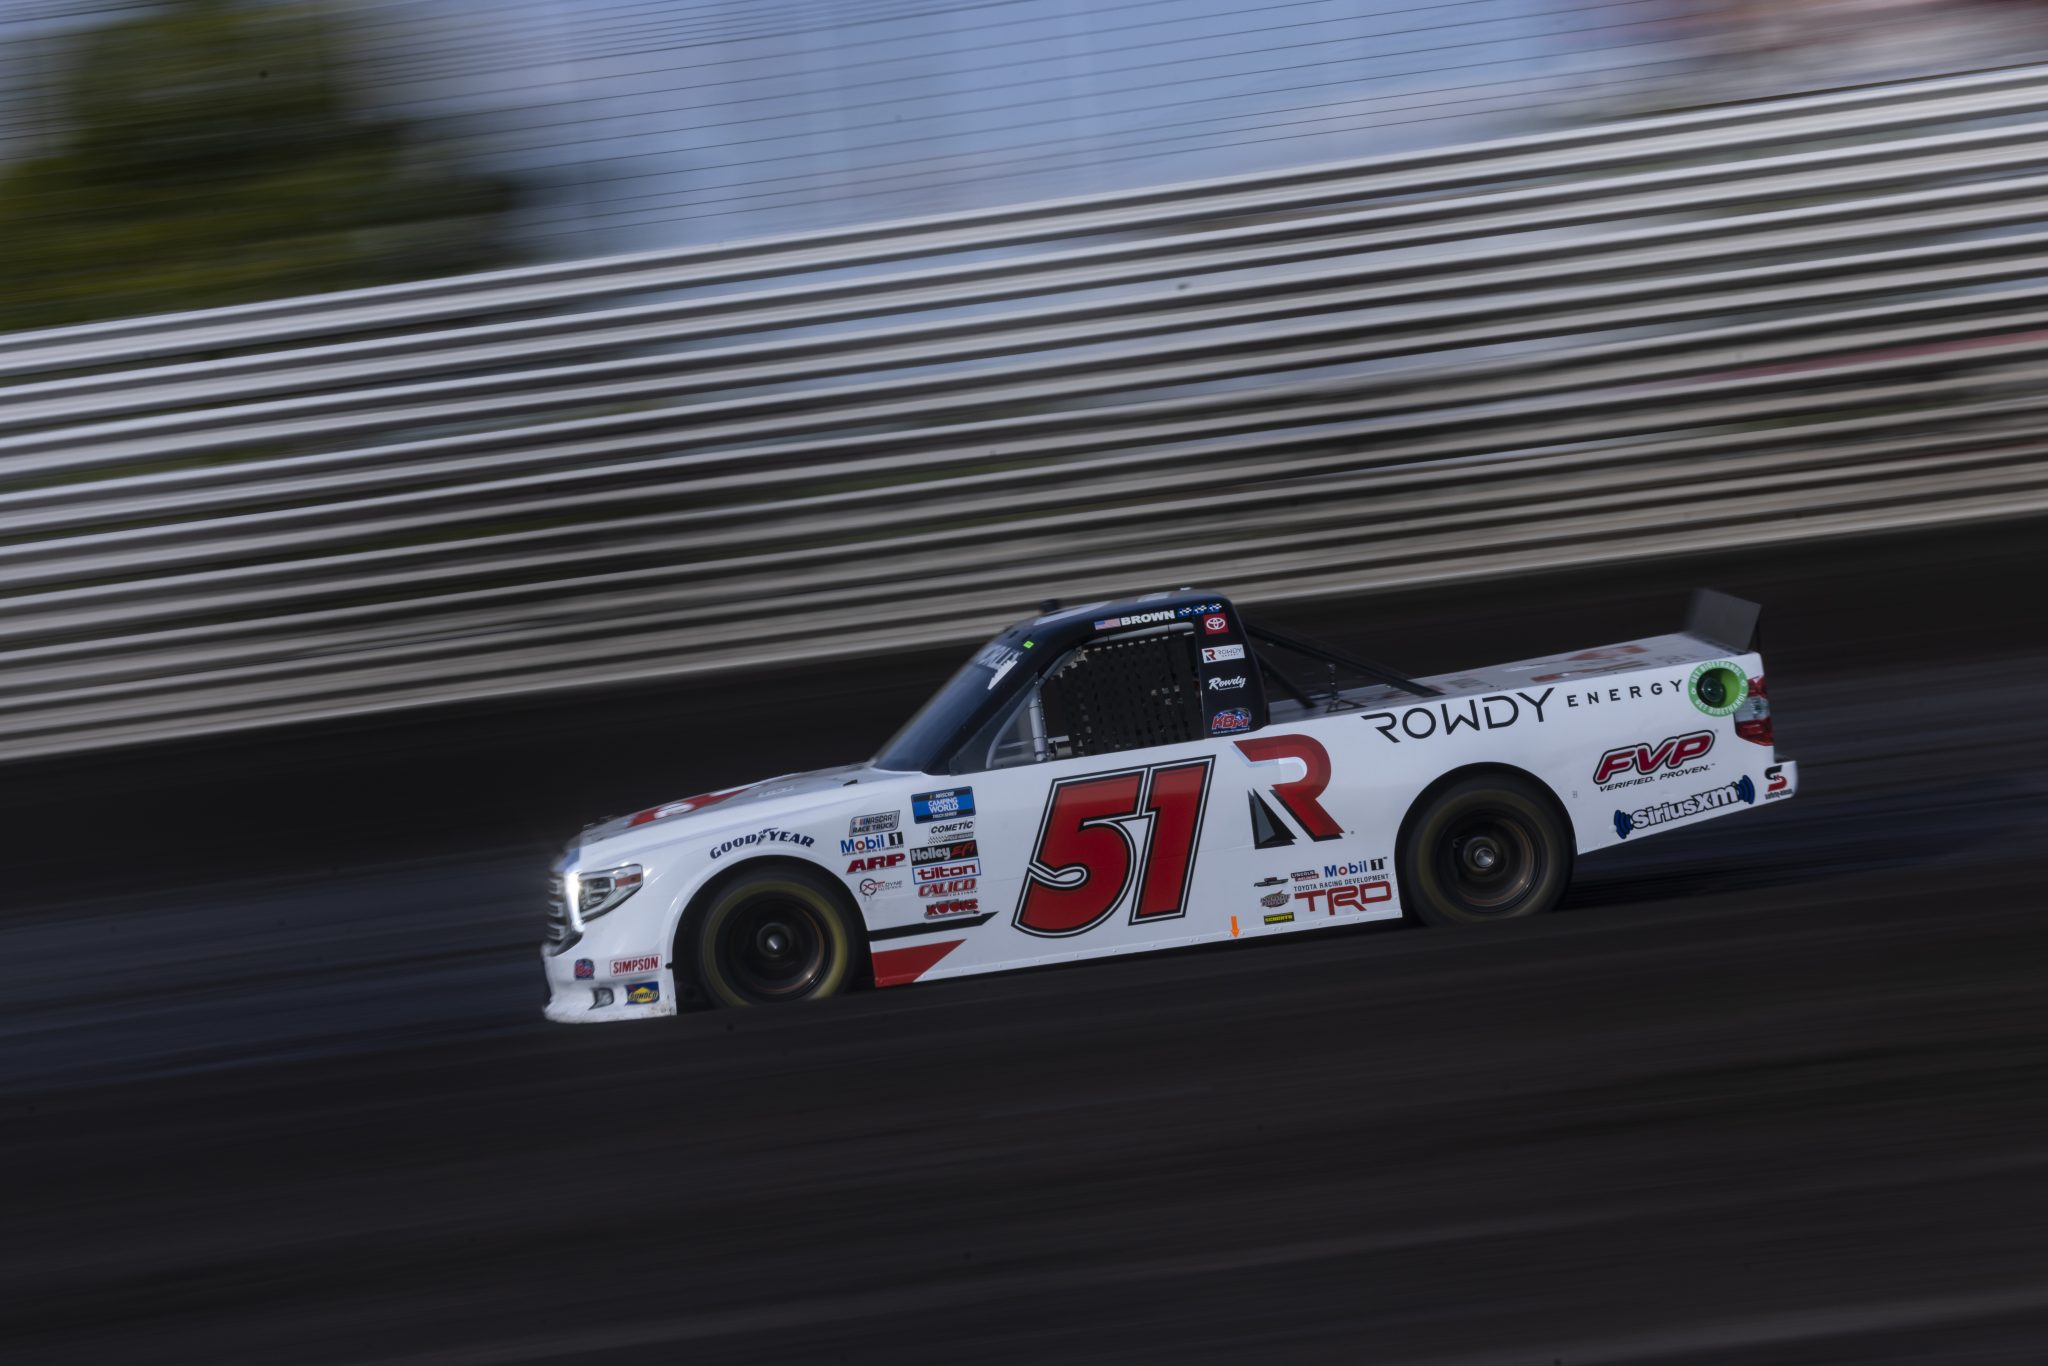 KNOXVILLE, IOWA - JULY 08: Brian Brown, driver of the #51 Casey's/Rowdy Energy Toyota, drives during practice for the NASCAR Camping World Truck Series Corn Belt 150 presented by Premier Chevy Dealers at Knoxville Raceway on July 08, 2021 in Knoxville, Iowa. (Photo by James Gilbert/Getty Images) | Getty Images